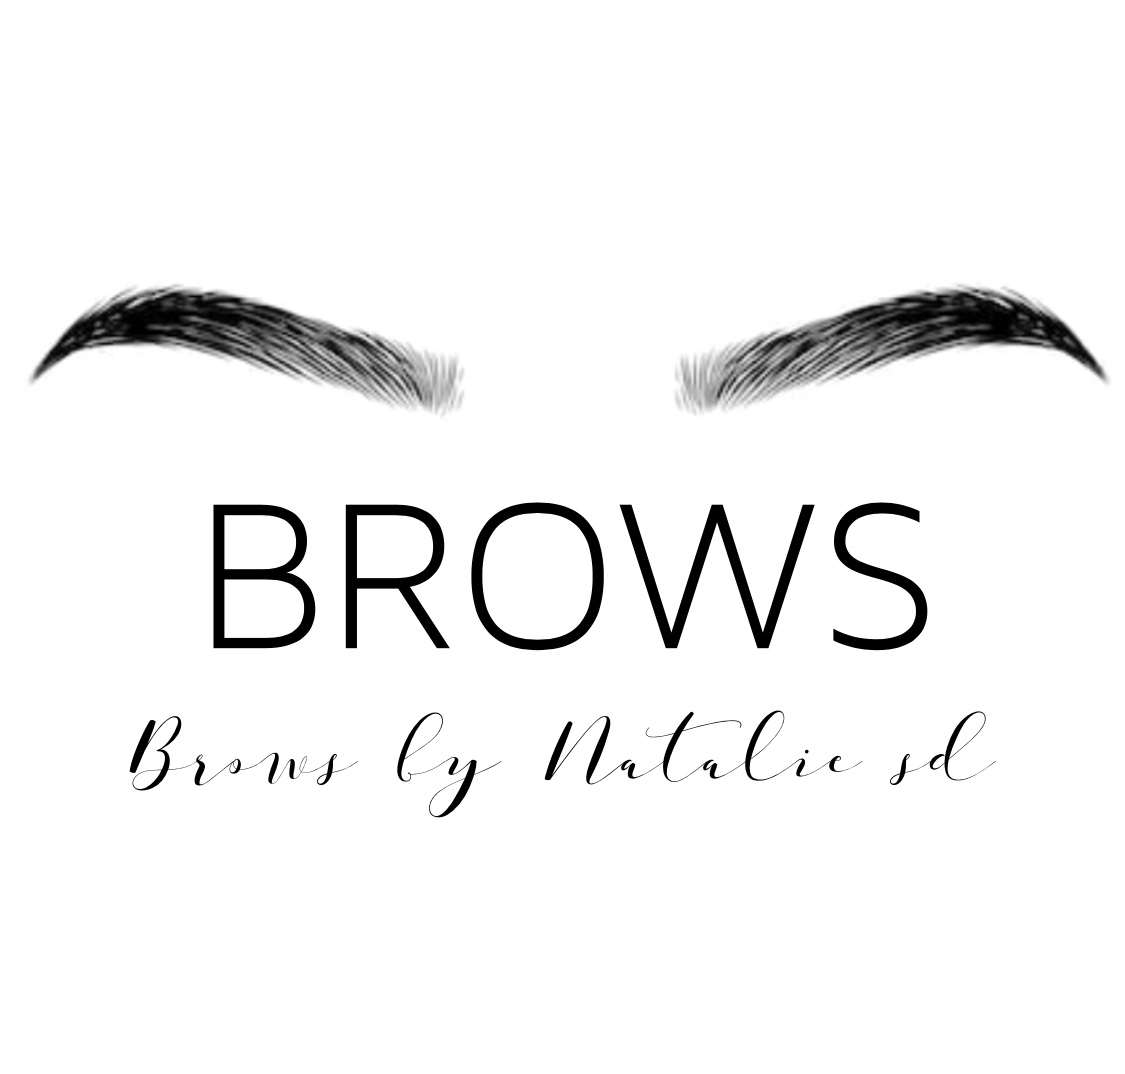 BROWS BY NATALIE SD